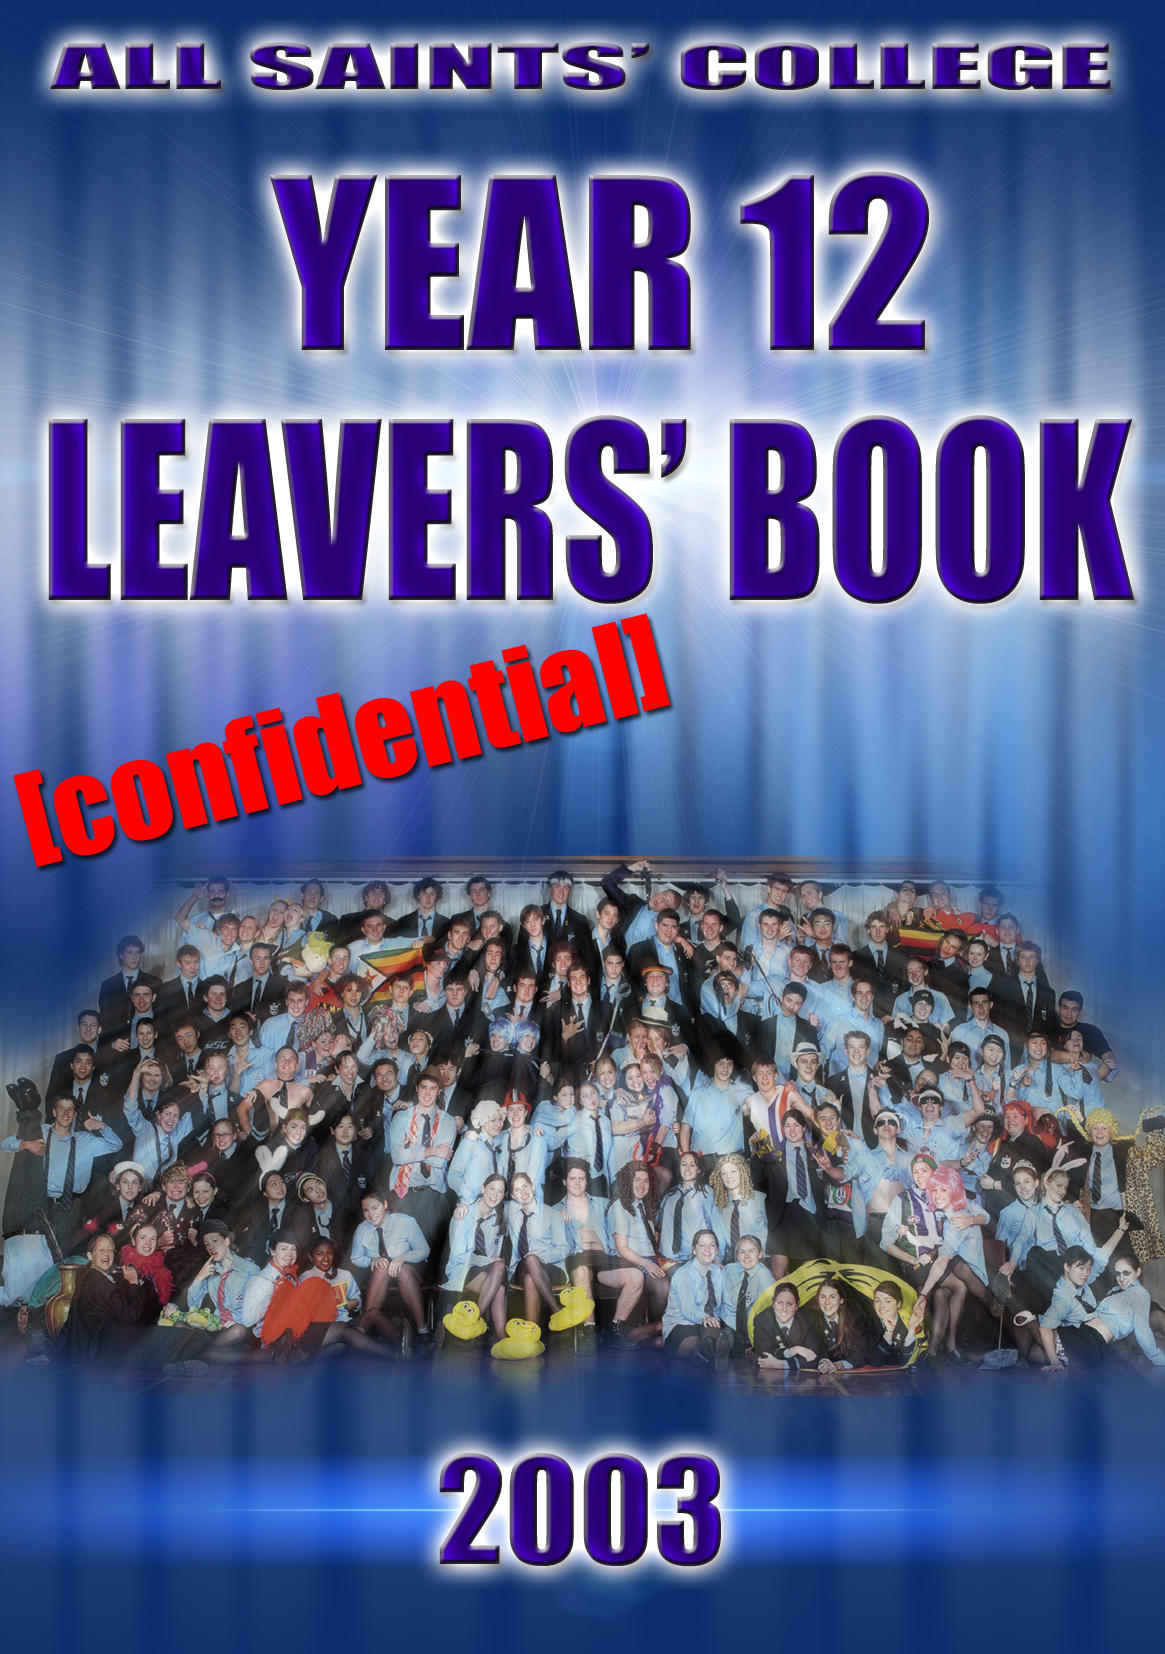 Leavers Book Cover Ideas : Asc leavers book cover by tim au on deviantart